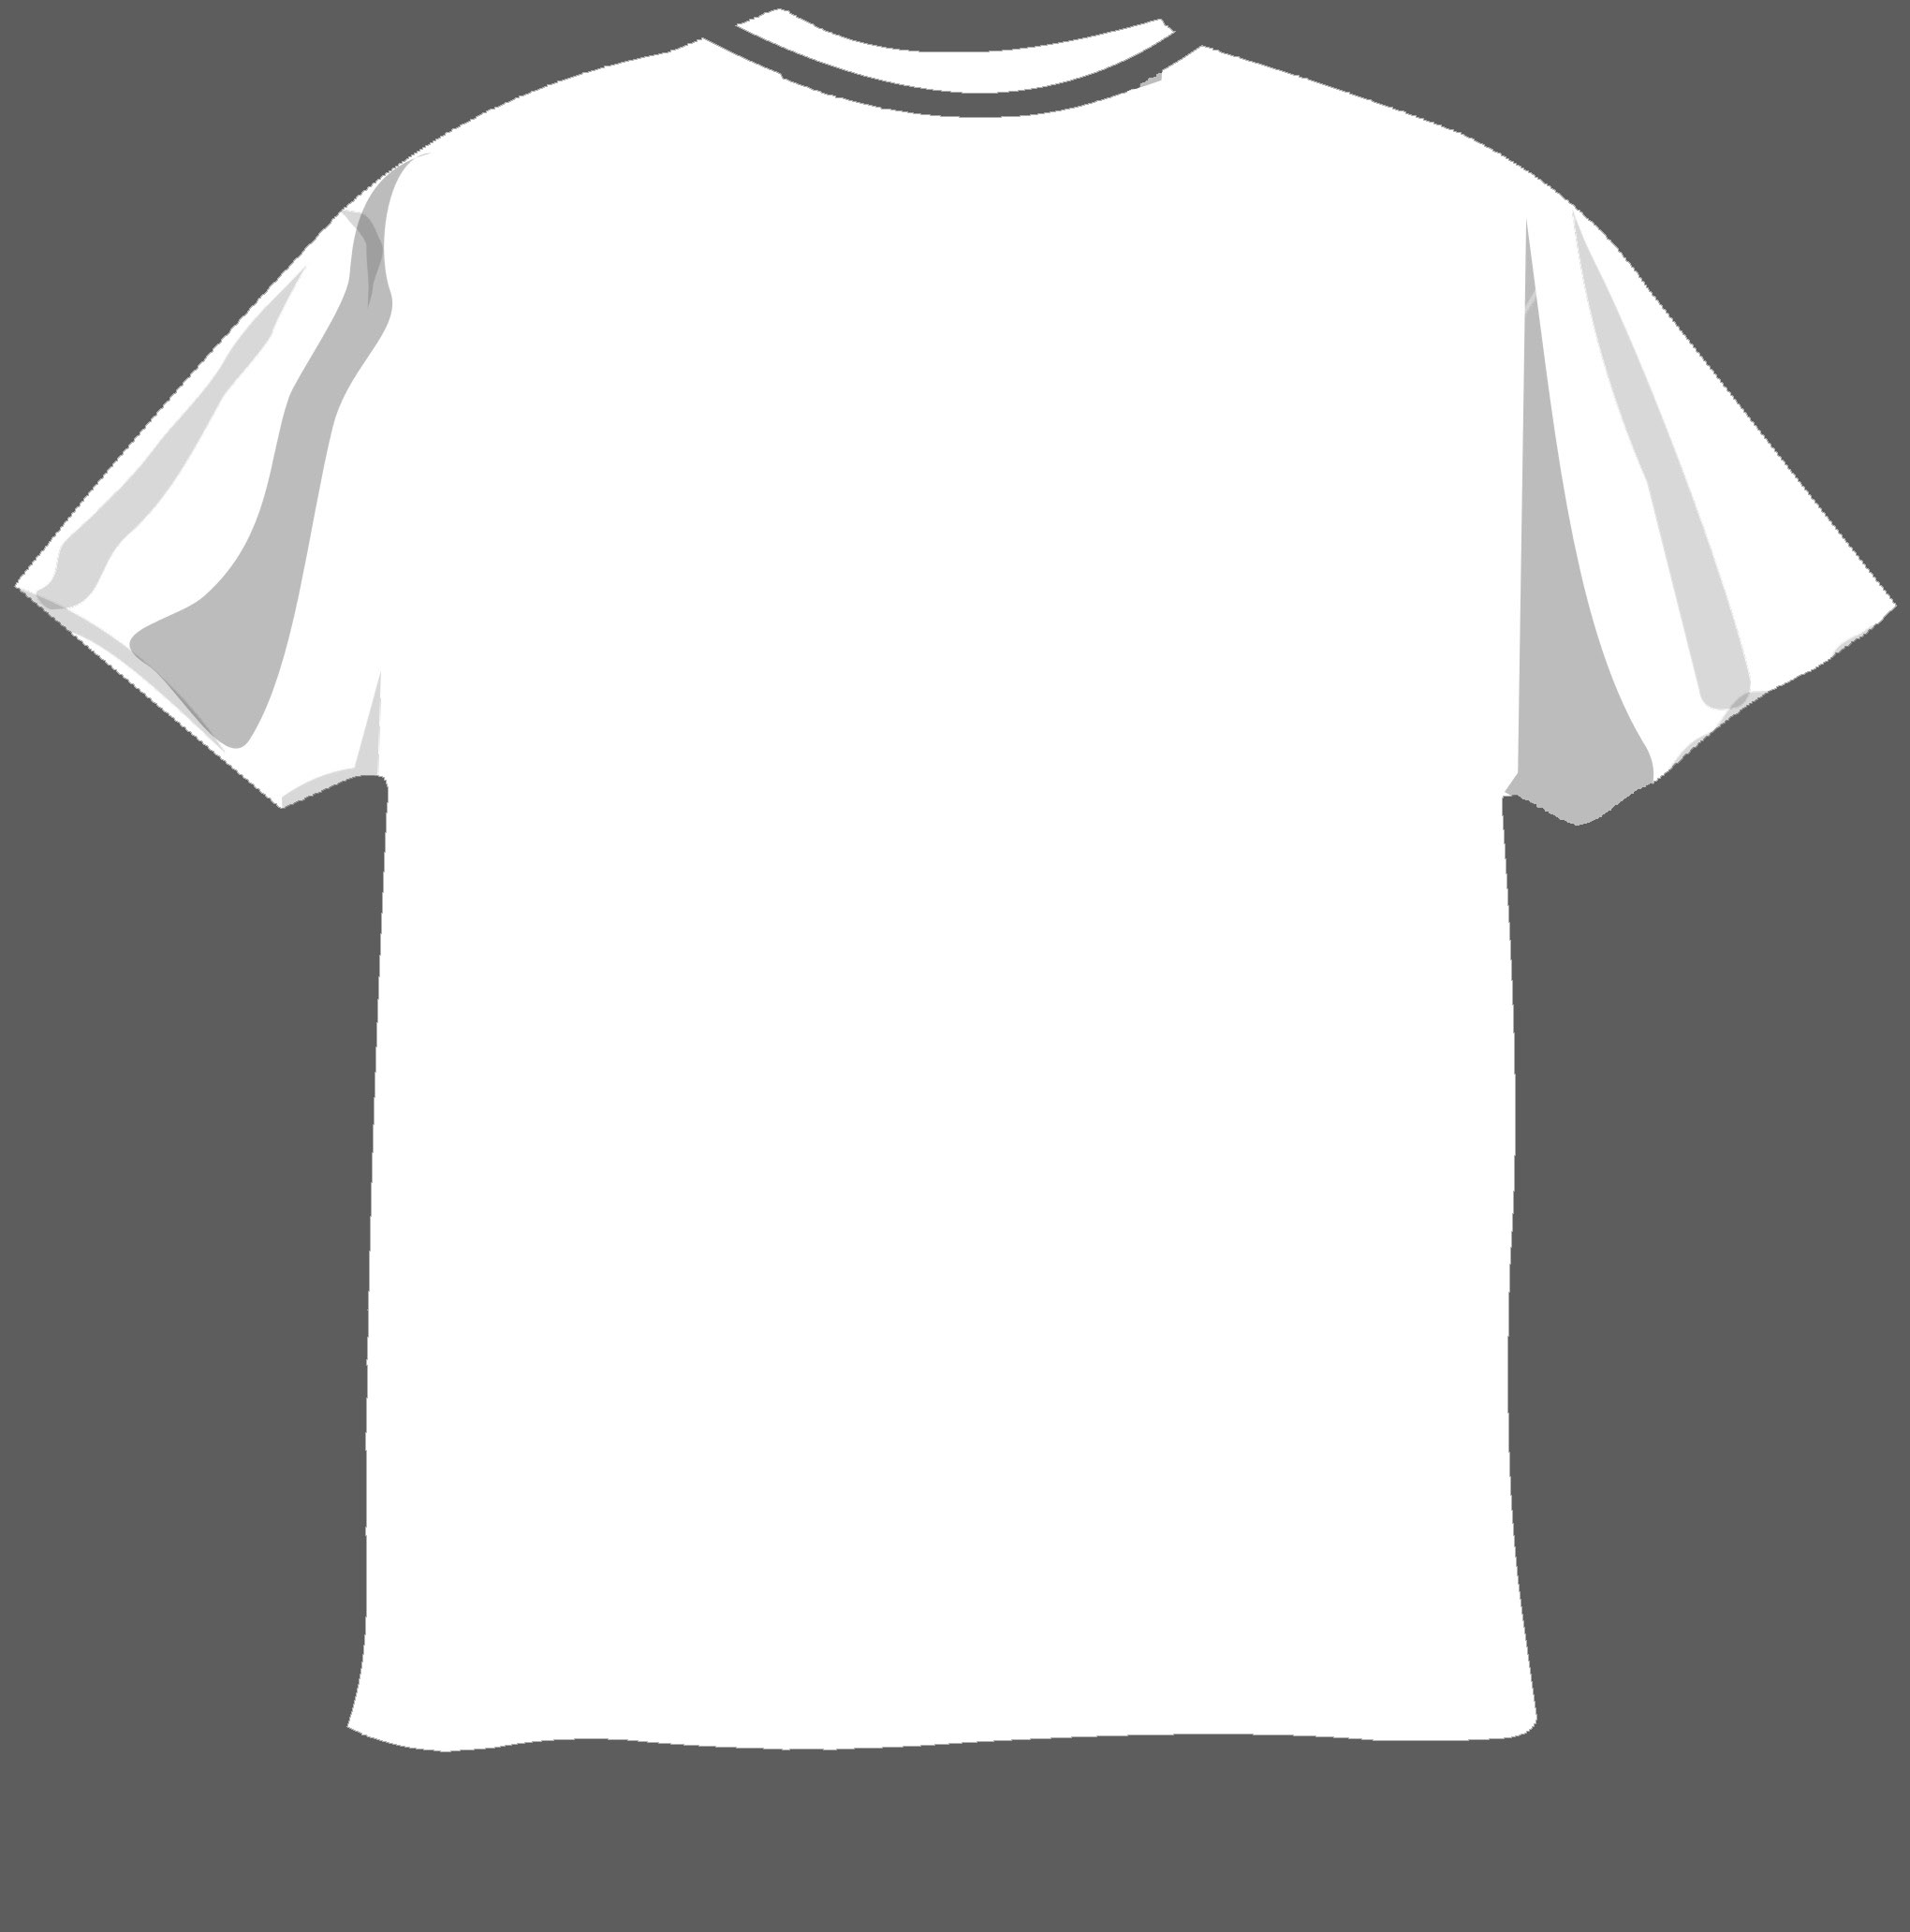 20 T-Shirt Design Template Photoshop Images